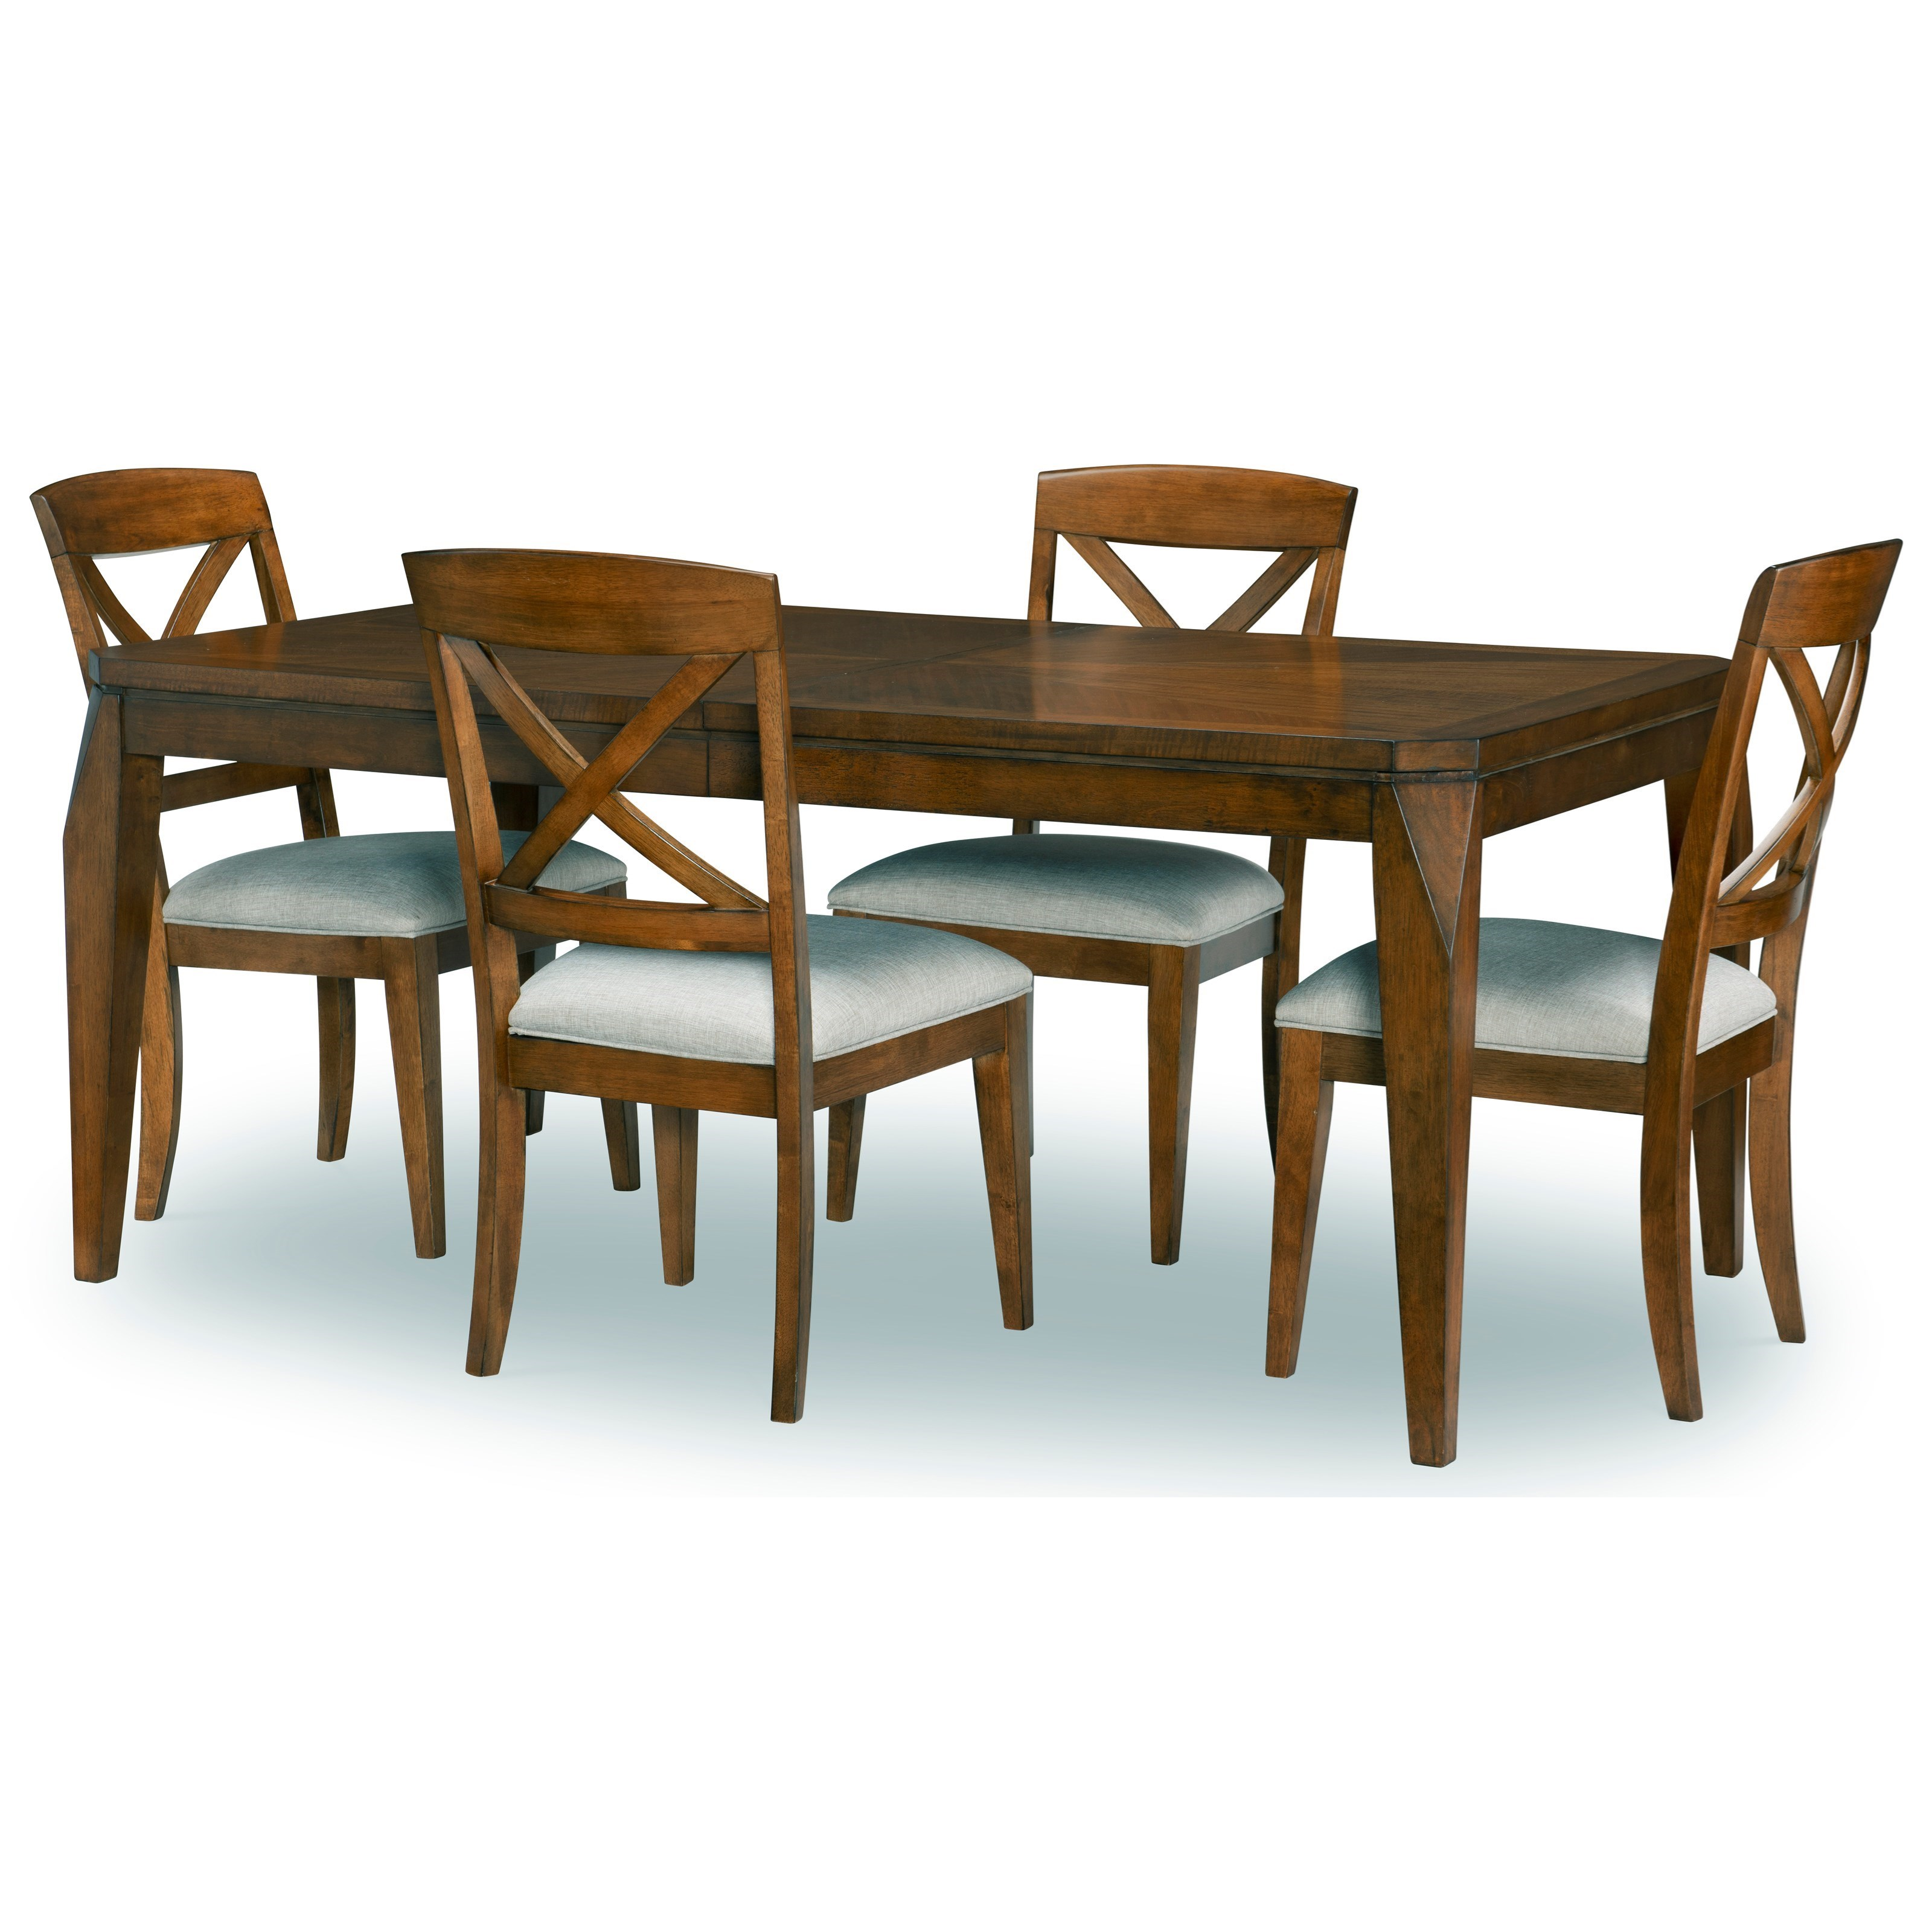 Hamilton Hamilton 5-Piece Dining Table Set by Legacy Classic at Morris Home